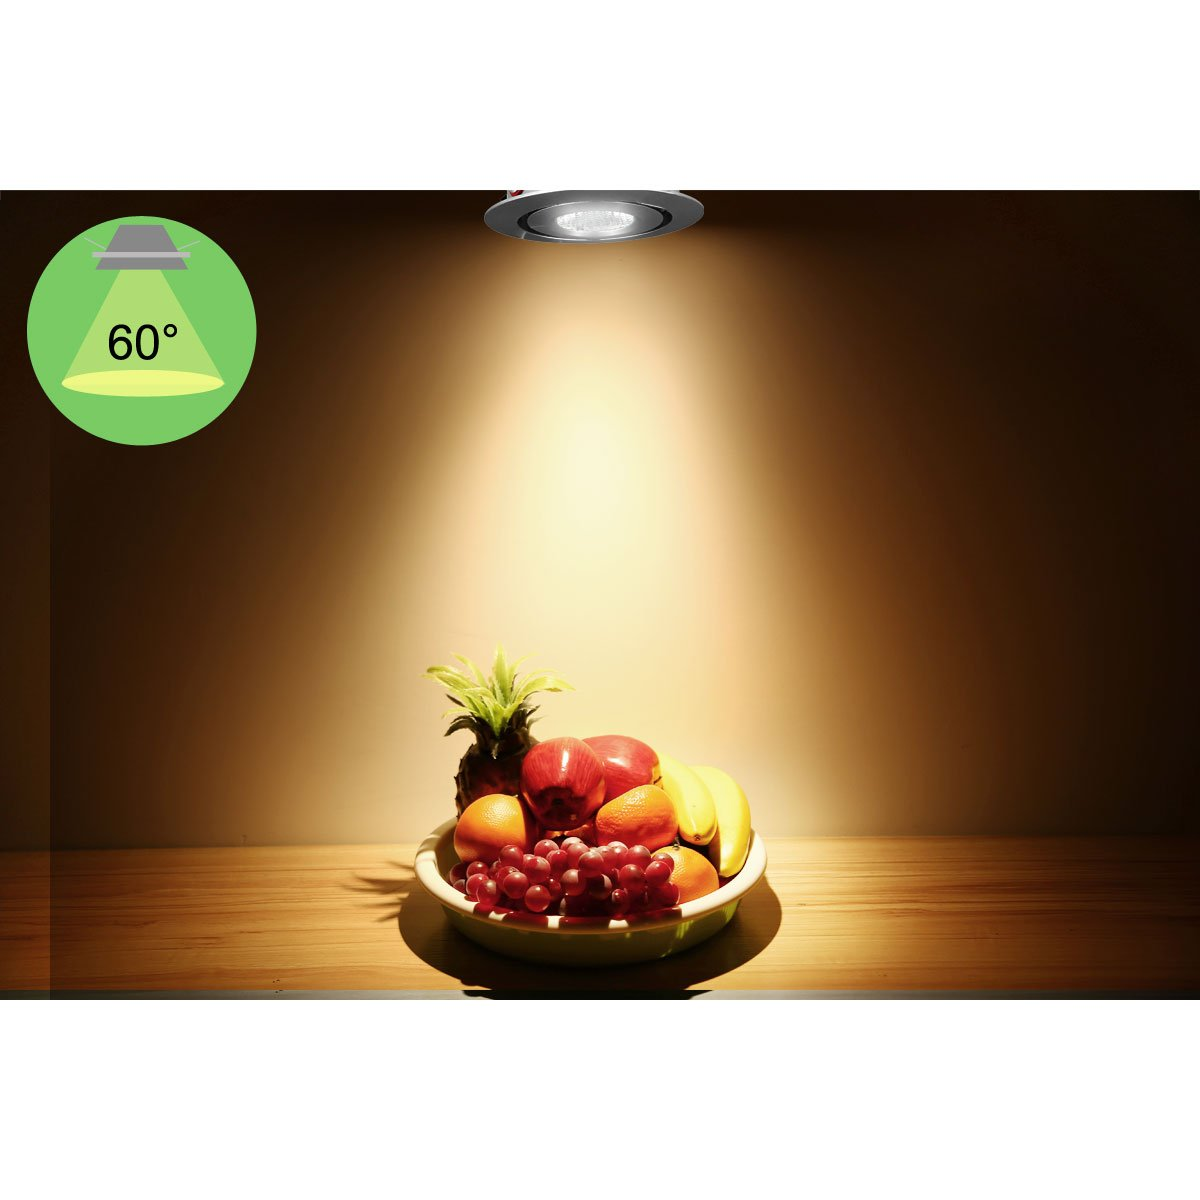 Le 15 inch led under cabinet lighting 10w halogen bulbs le 15 inch led under cabinet lighting 10w halogen bulbs equivalent 1w 12 v dc 80lm warm white 3000k low voltage recessed ceiling lights recessed arubaitofo Images